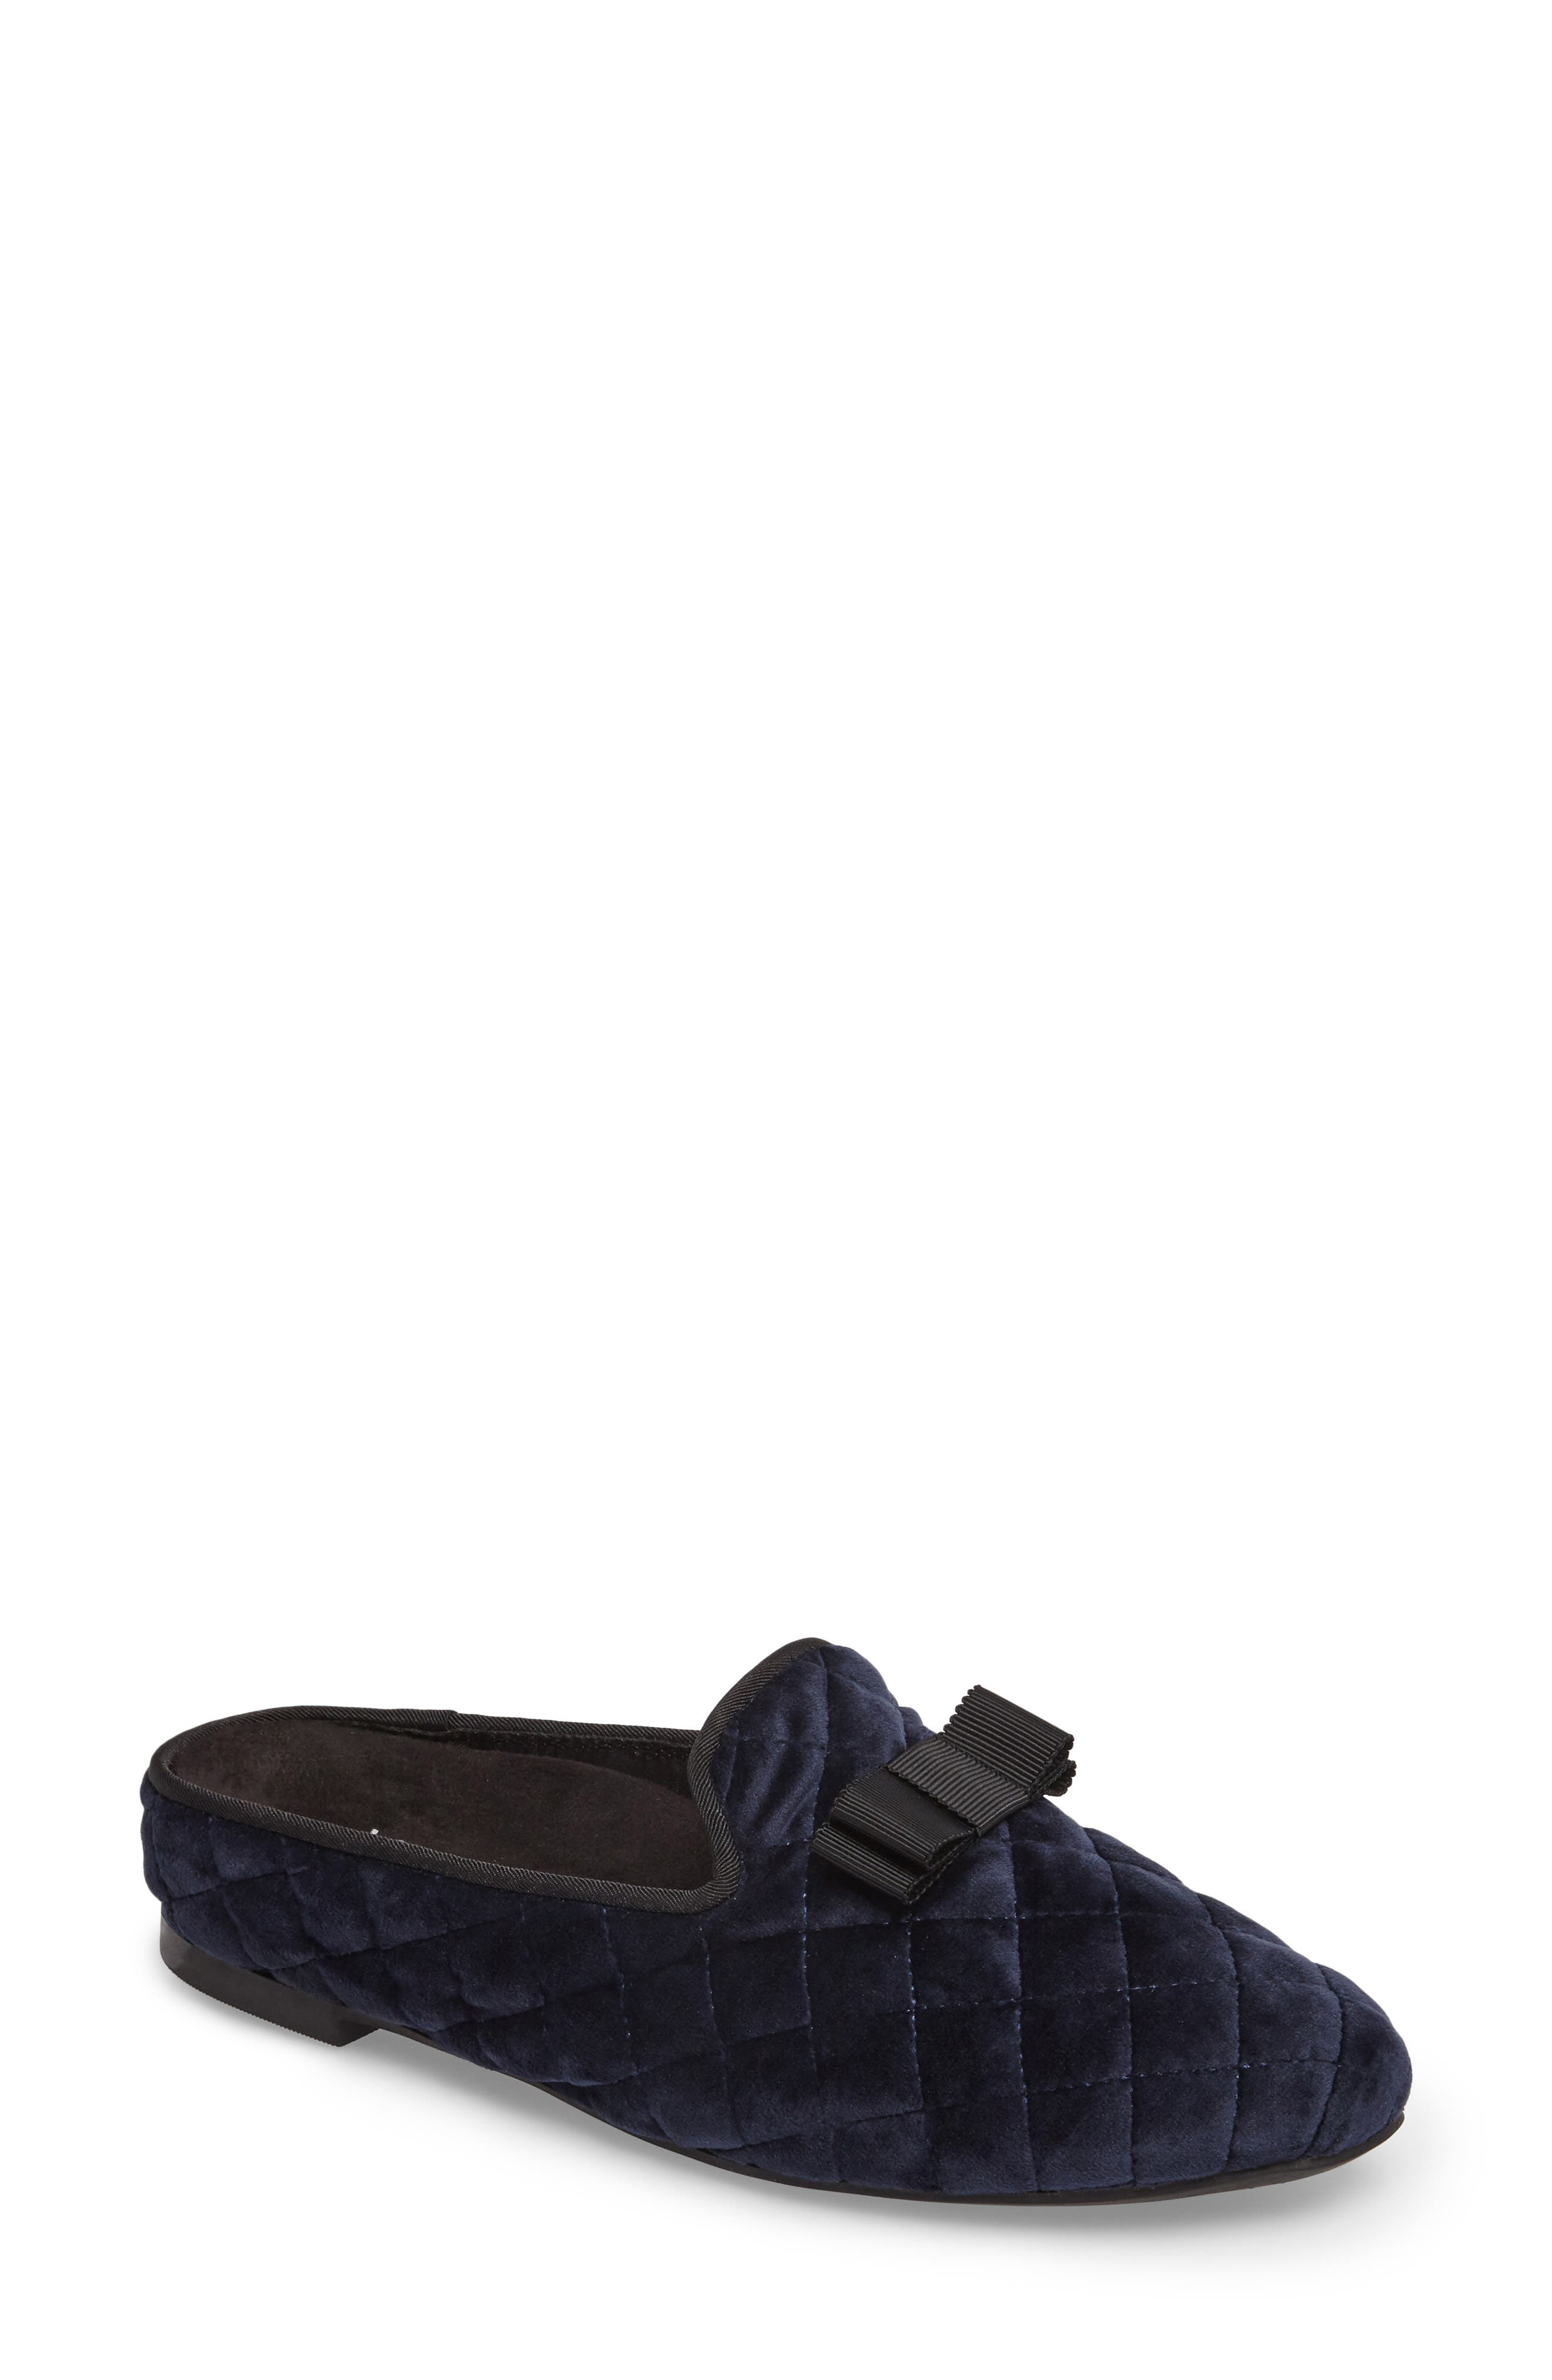 Alternate Image 1 Selected - Vionic Eloise Slipper Mule (Women)